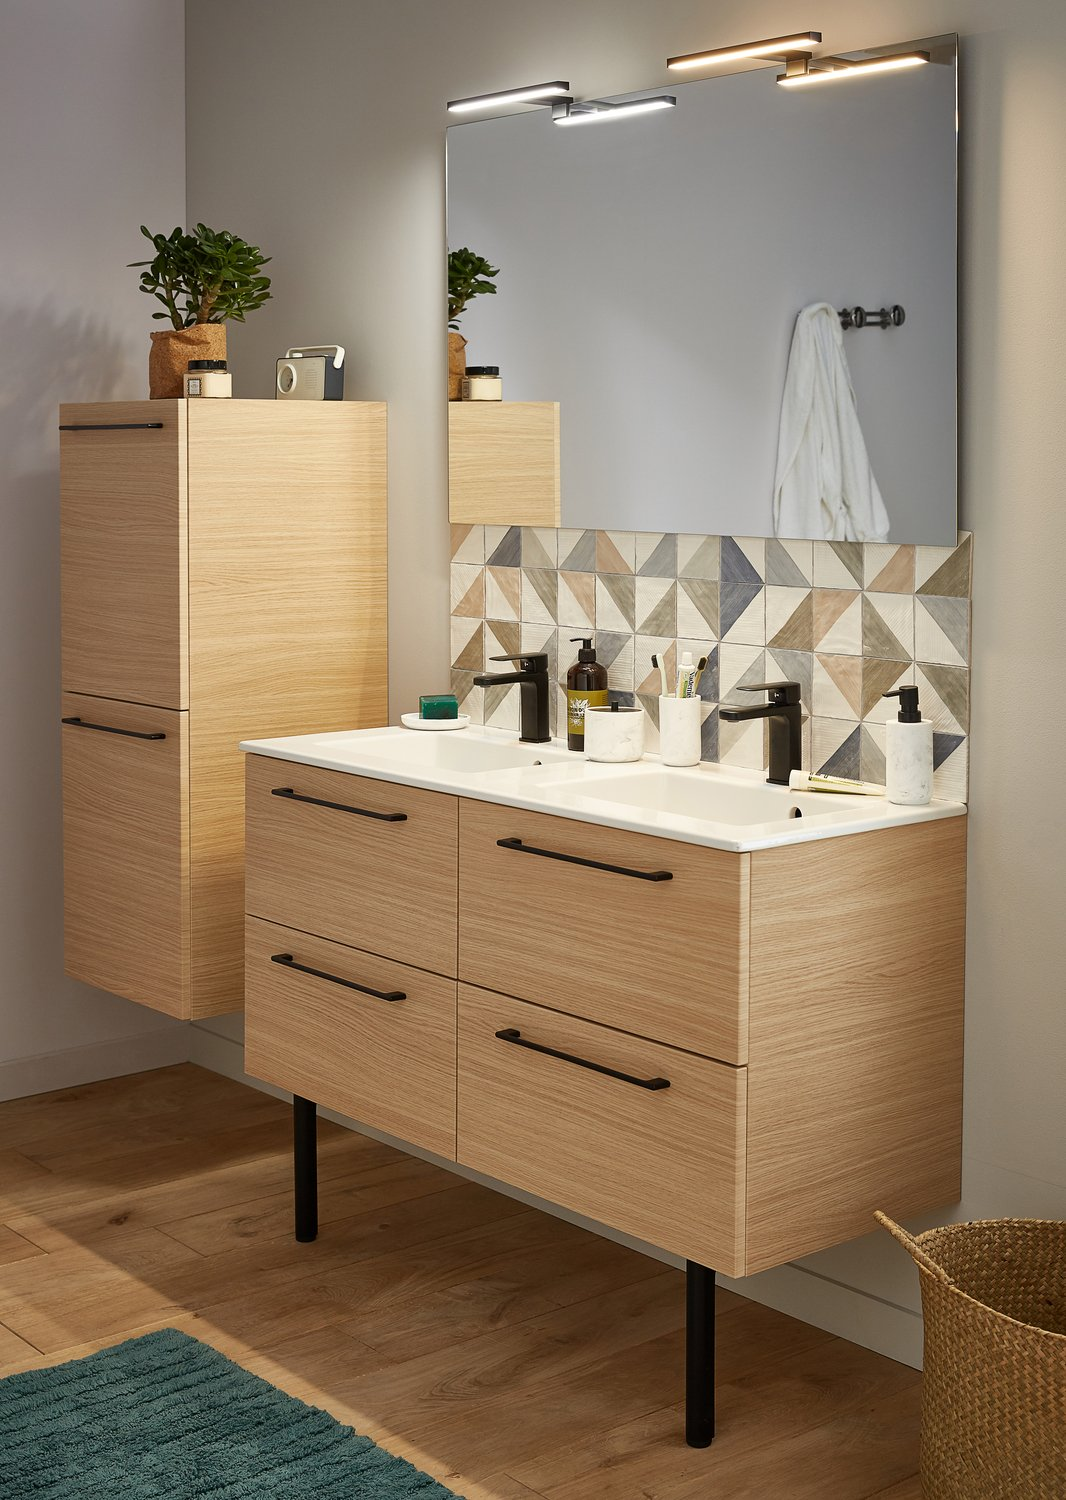 du noir pour personnaliser le mobilier de la salle de bain leroy merlin. Black Bedroom Furniture Sets. Home Design Ideas